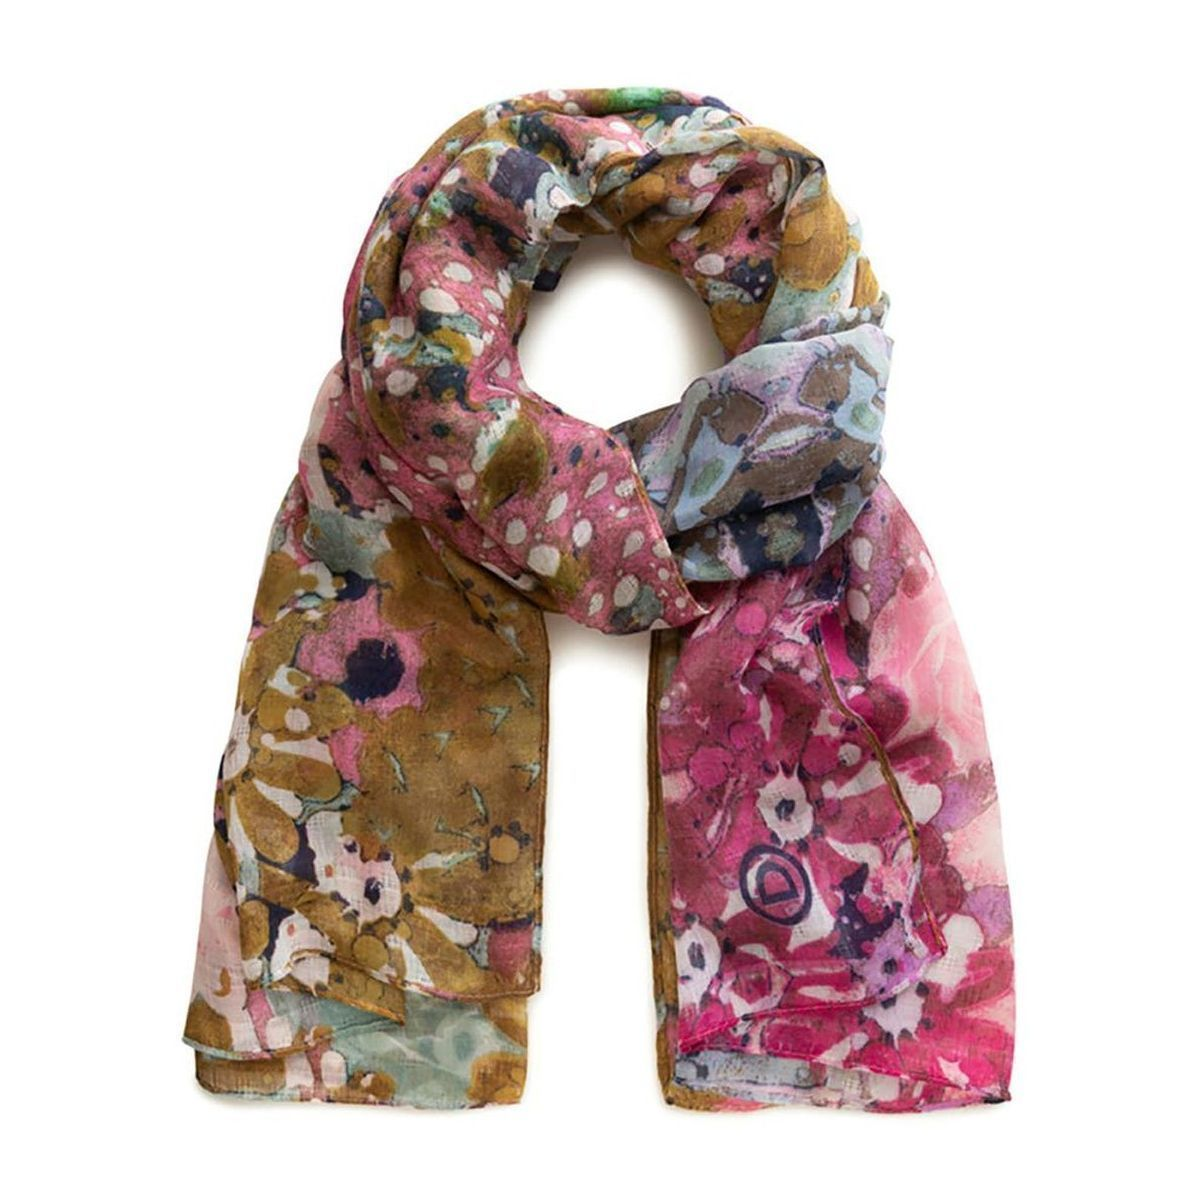 QUESTAR BYD M FOUL_KALEIDOSCOPE:MULTICOLORE/VISCOSE/POLYESTER//Multicolore